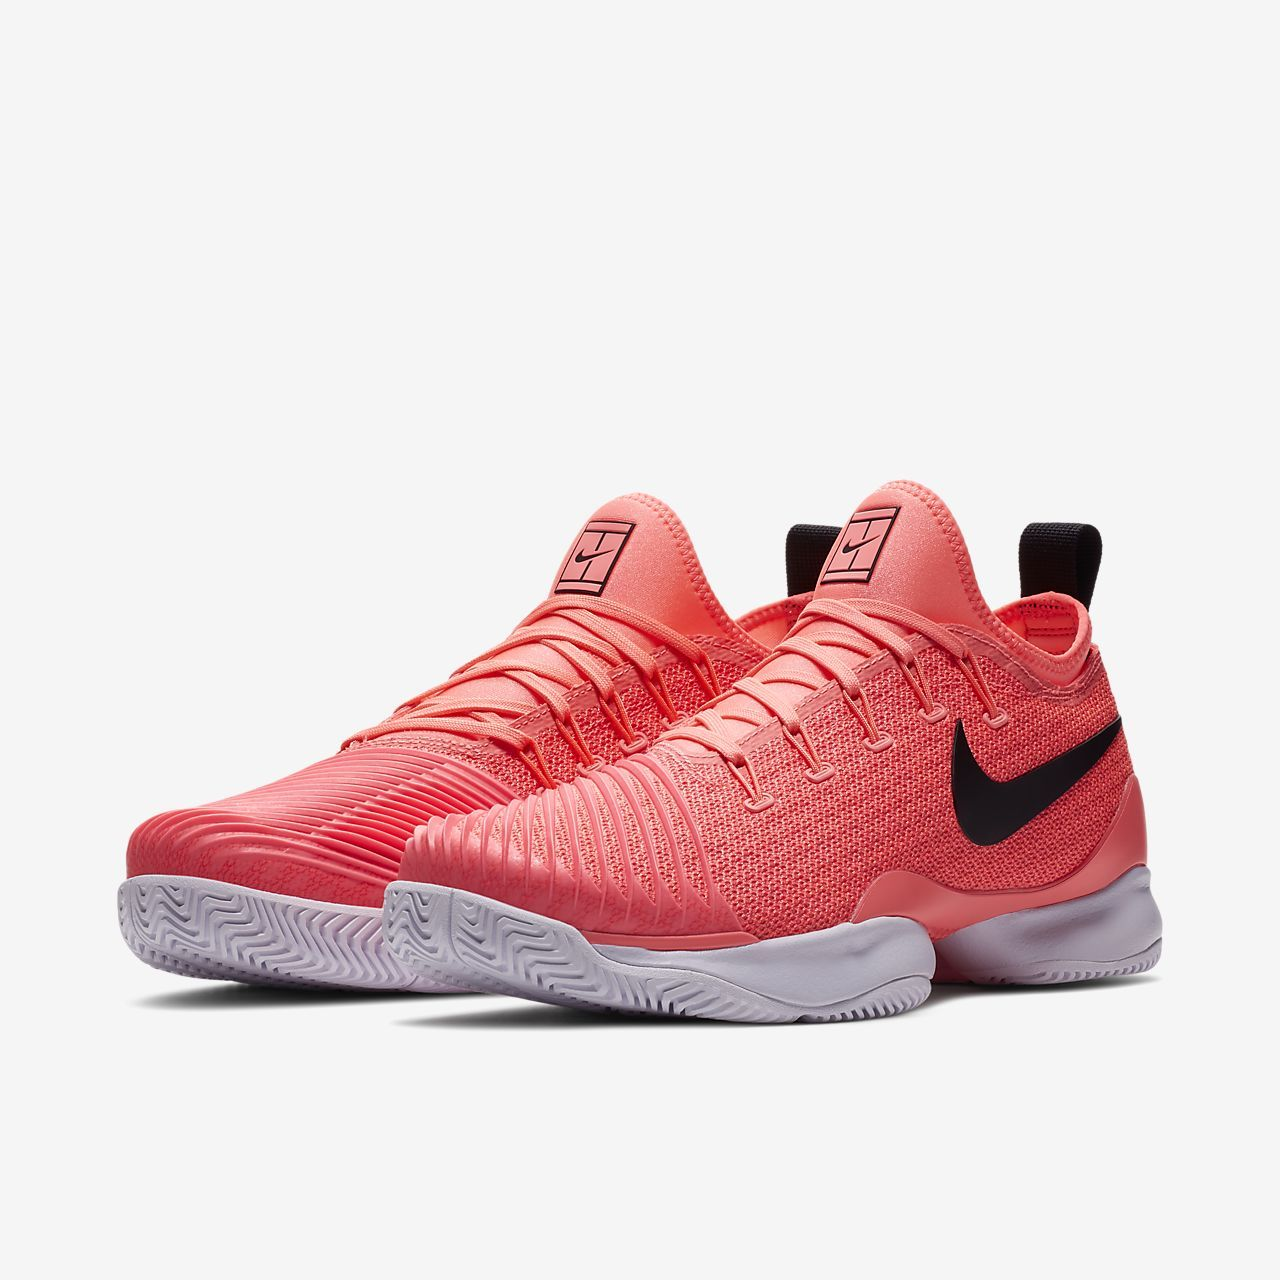 official photos 5a5cb 7d7ab NikeCourt Air Zoom Zoom Zoom Ultra Rct Femme  s Tennis Chaussure Basket  freakin f50528